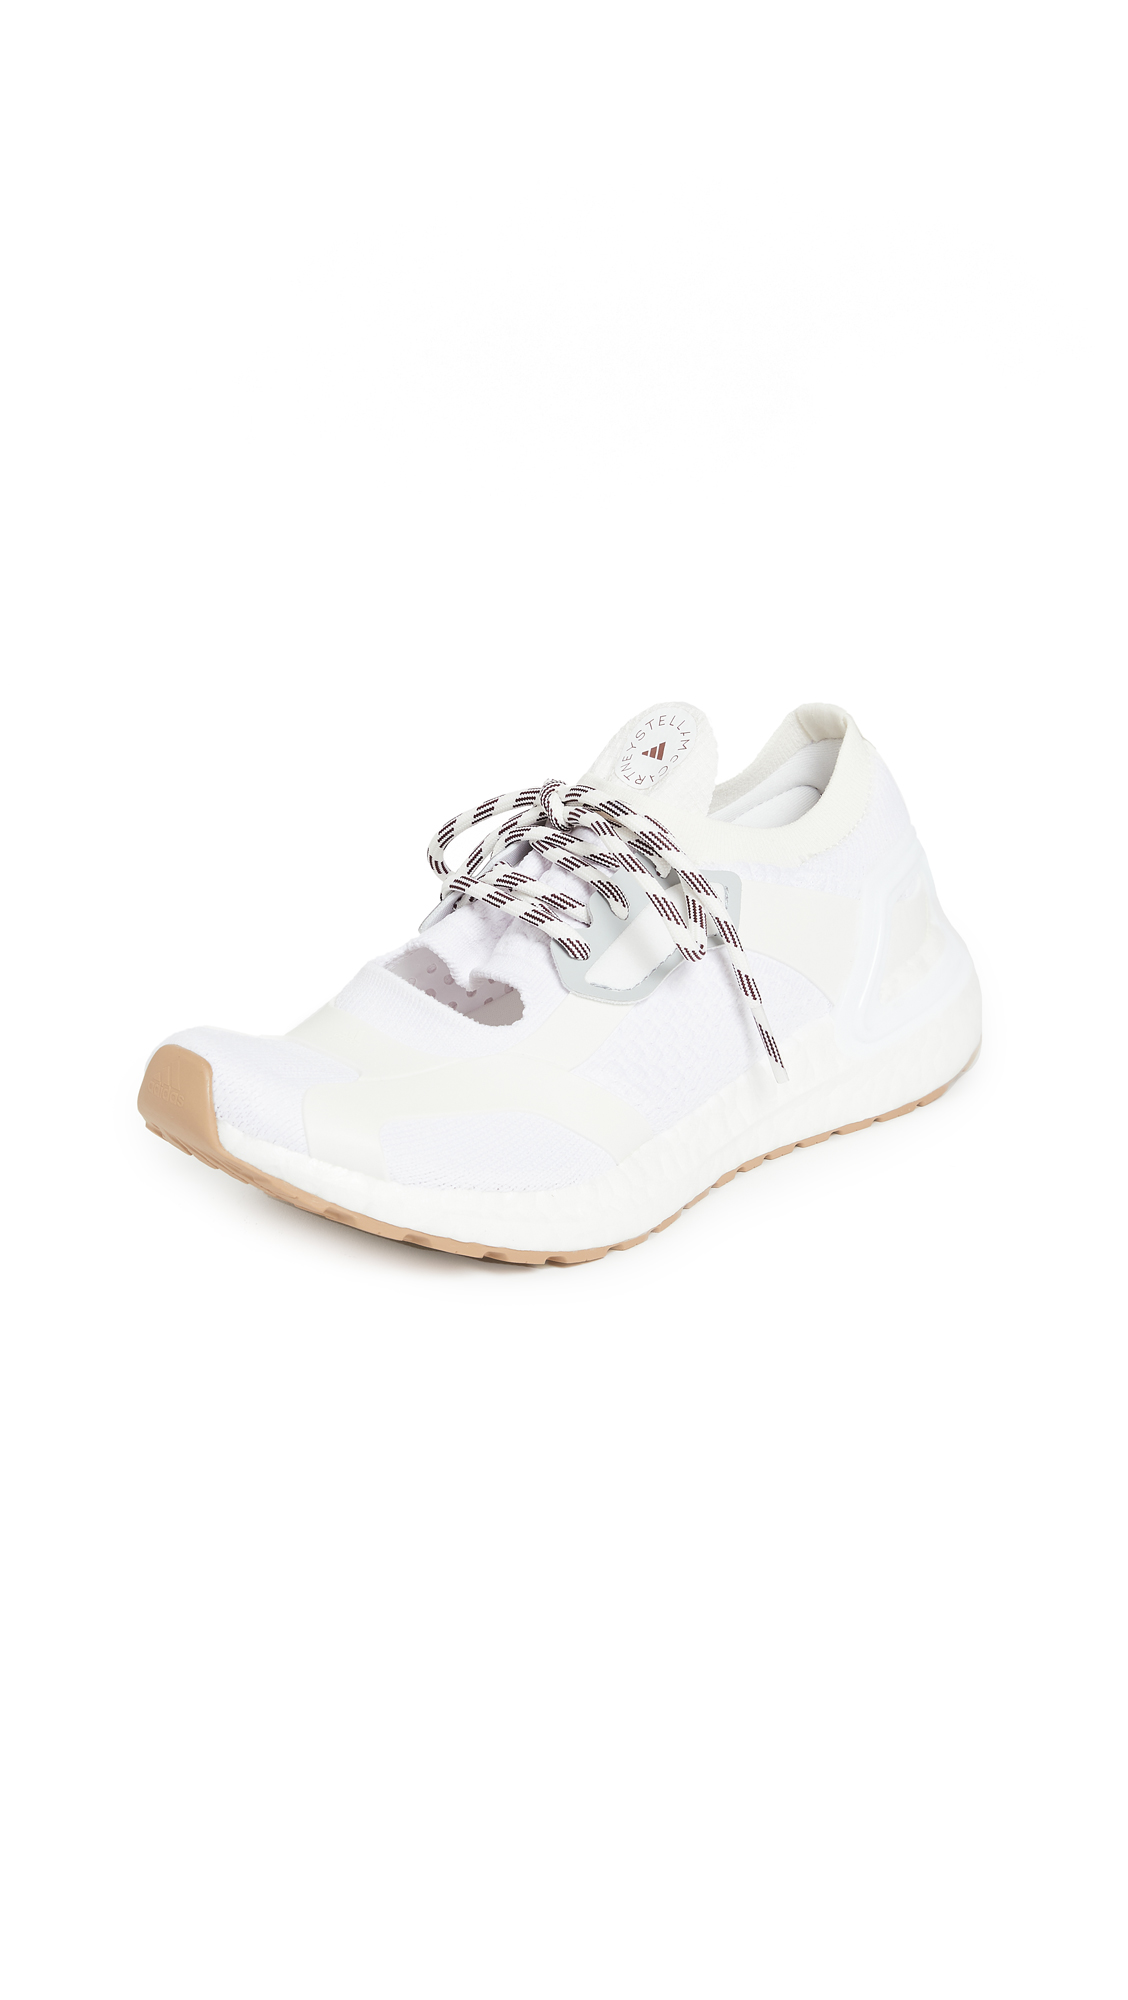 adidas by Stella McCartney Asmc Ultraboost Sandal Sneakers